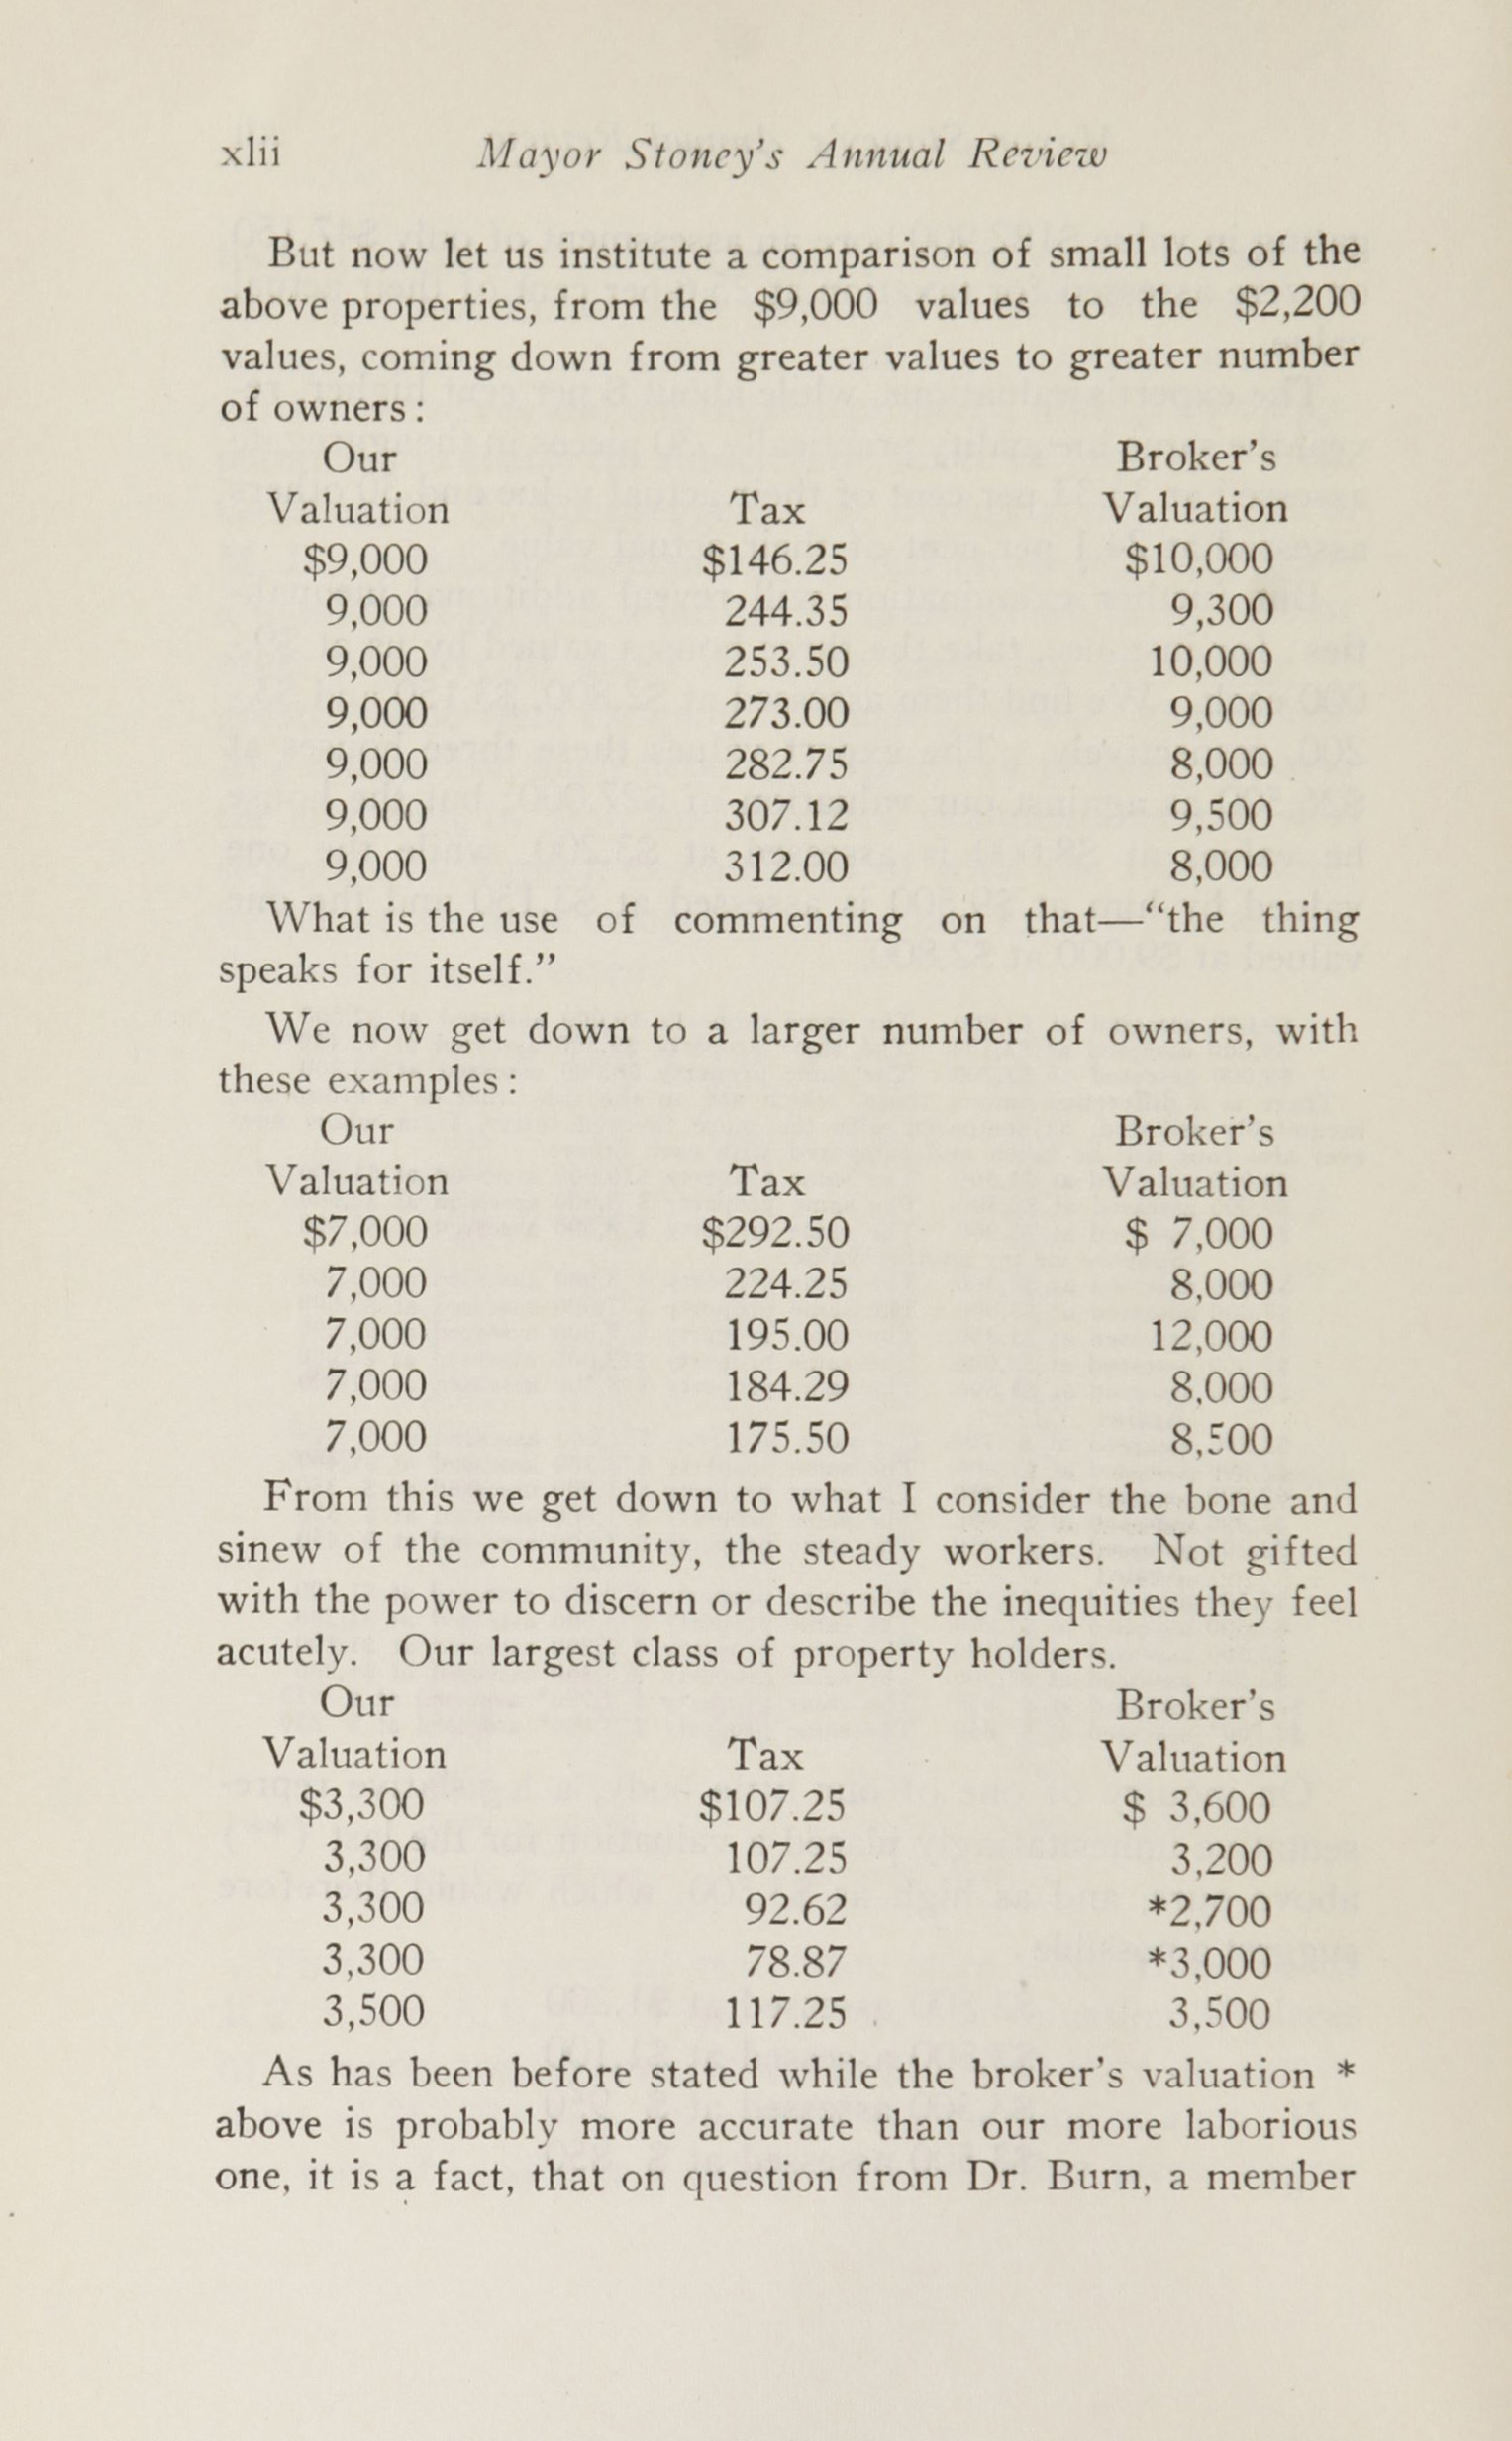 Charleston Yearbook, 1924, page xlii